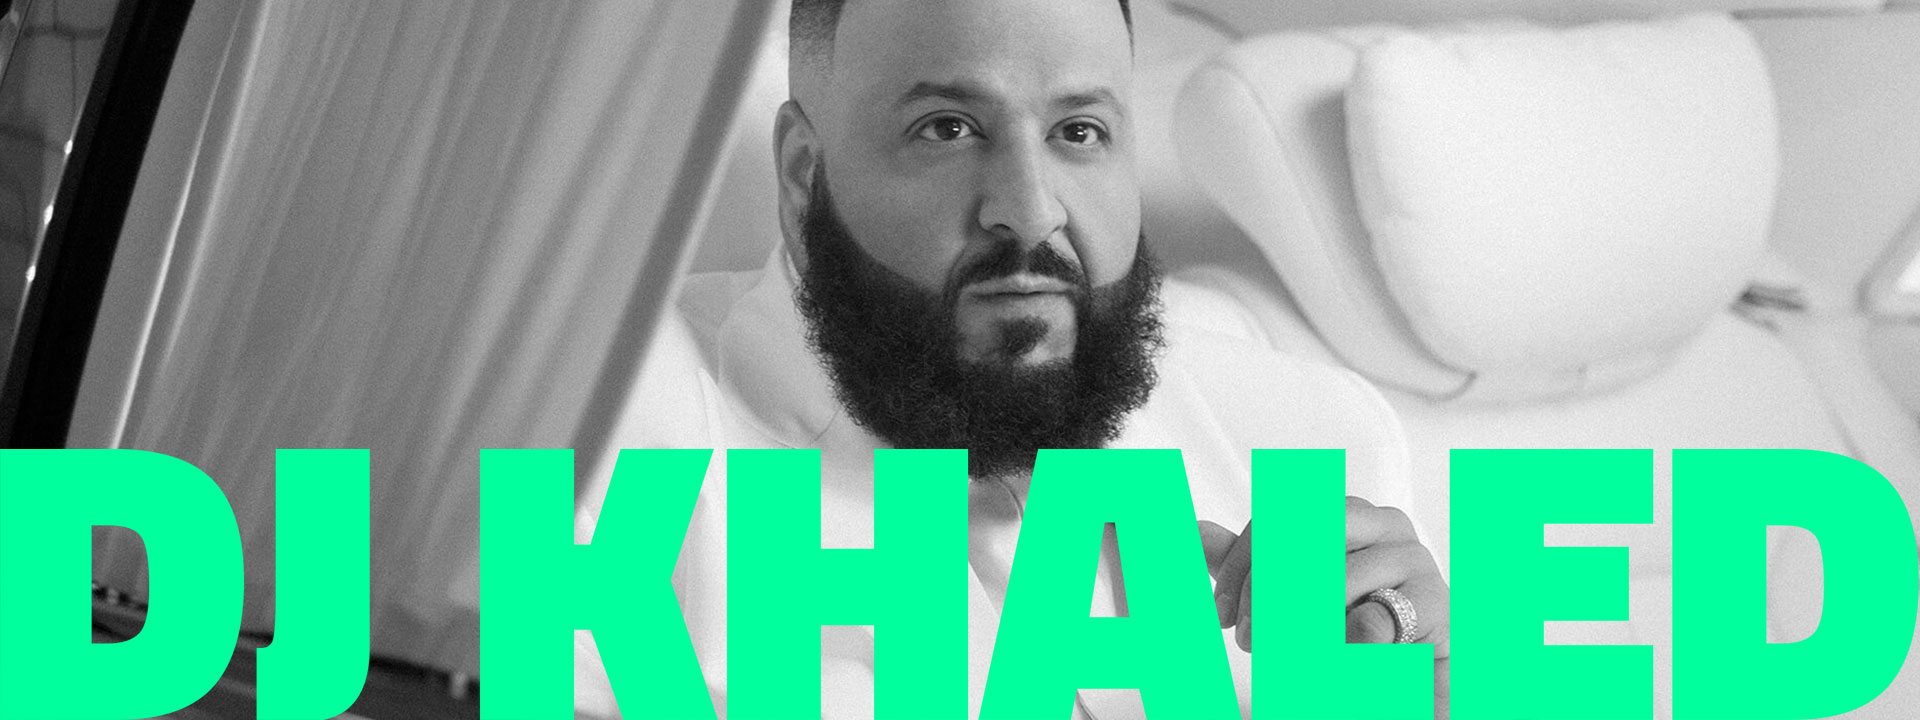 Click here to shop the DJ Khaled store!